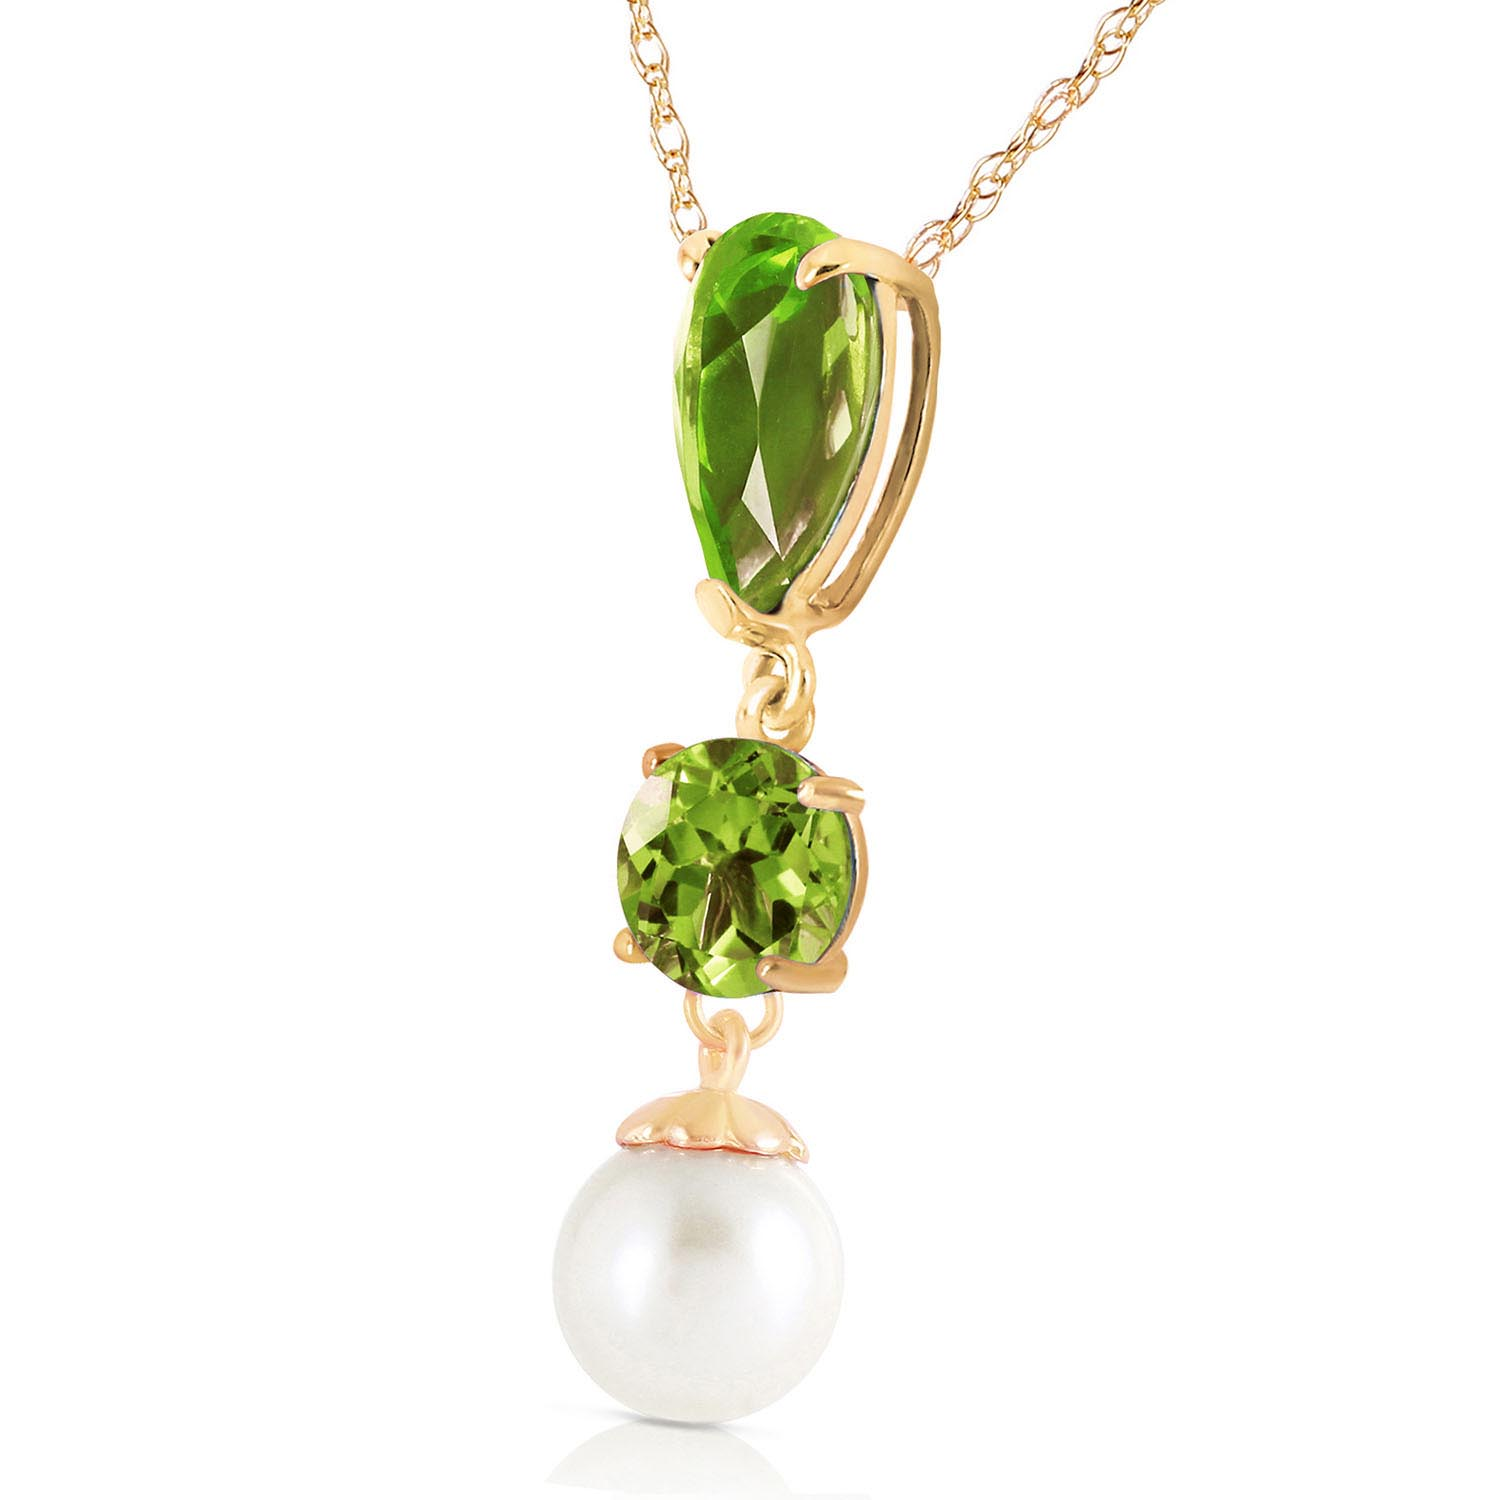 Peridot and Pearl Hourglass Pendant Necklace 5.25ctw in 9ct Gold